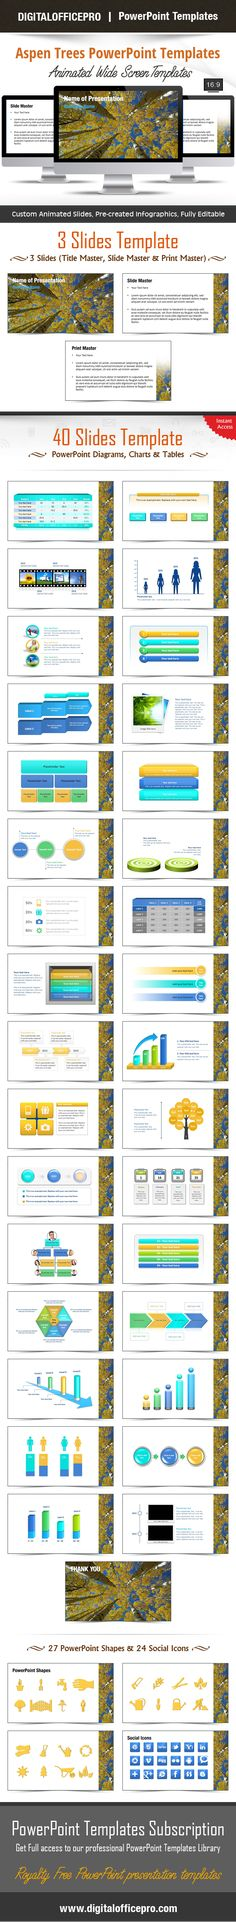 Impress and engage your audience with rice plant powerpoint impress and engage your audience with aspen trees powerpoint template and aspen trees powerpoint backgrounds from toneelgroepblik Choice Image